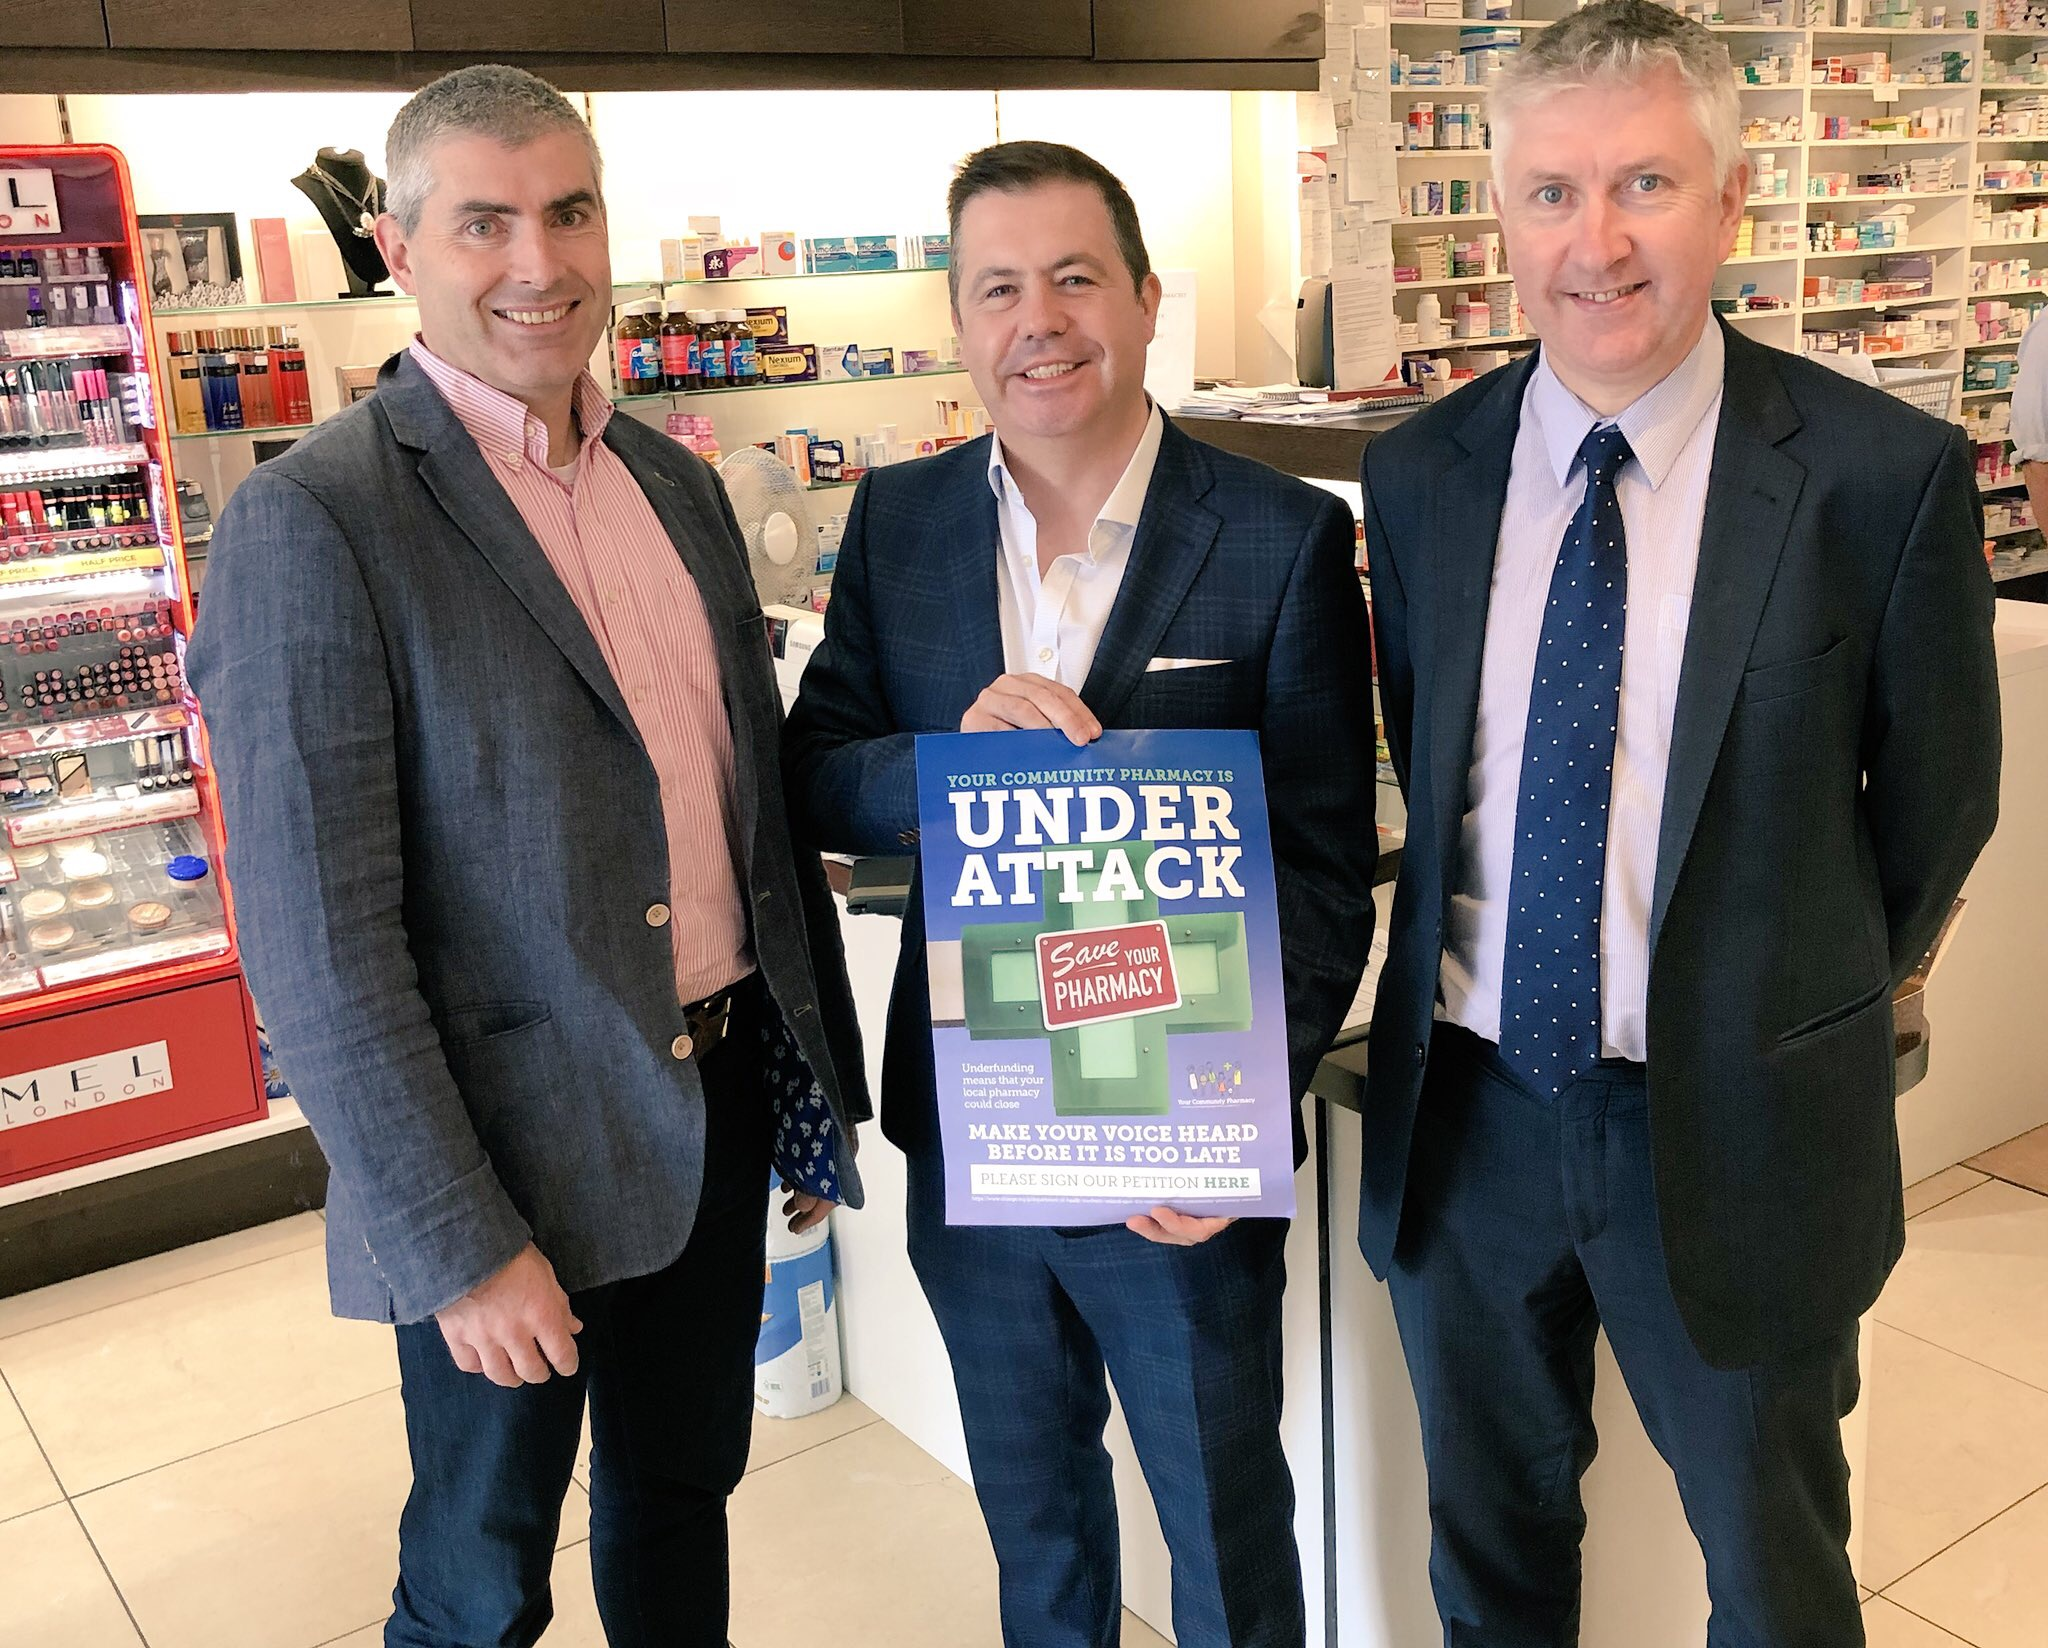 Photo (from L to R):  Paul Savage, Community Pharmacist; Glyn Roberts, Chief Executive, Retail NI; and Gerard Greene, Chief Executive, Community Pharmacy NI.